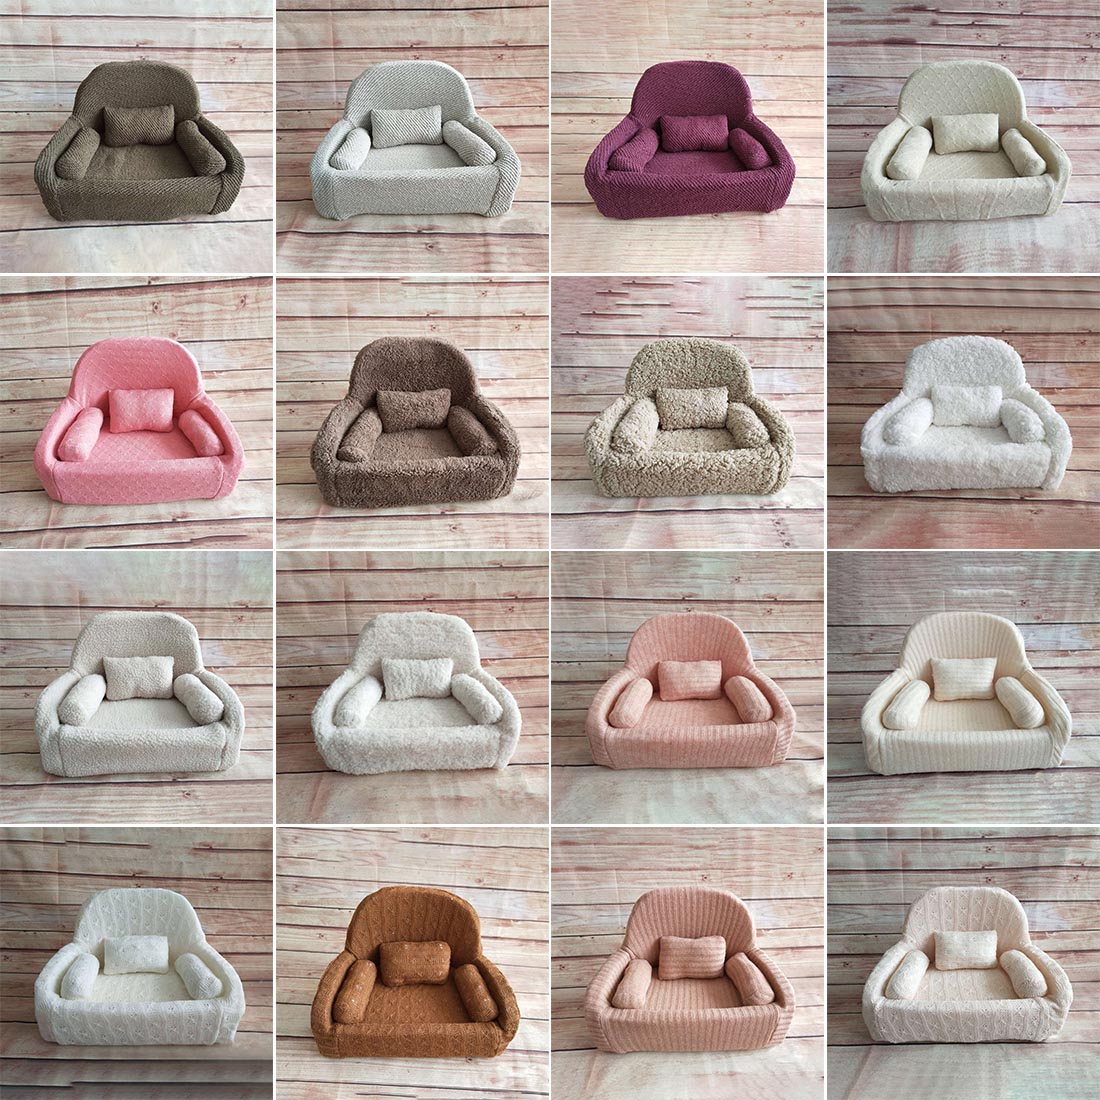 Baby Photography Props Newborn Mini Posing Sofa Chair Photo Shoot Accessories Infant Studio Shooting Props Baby Boy Basket Props